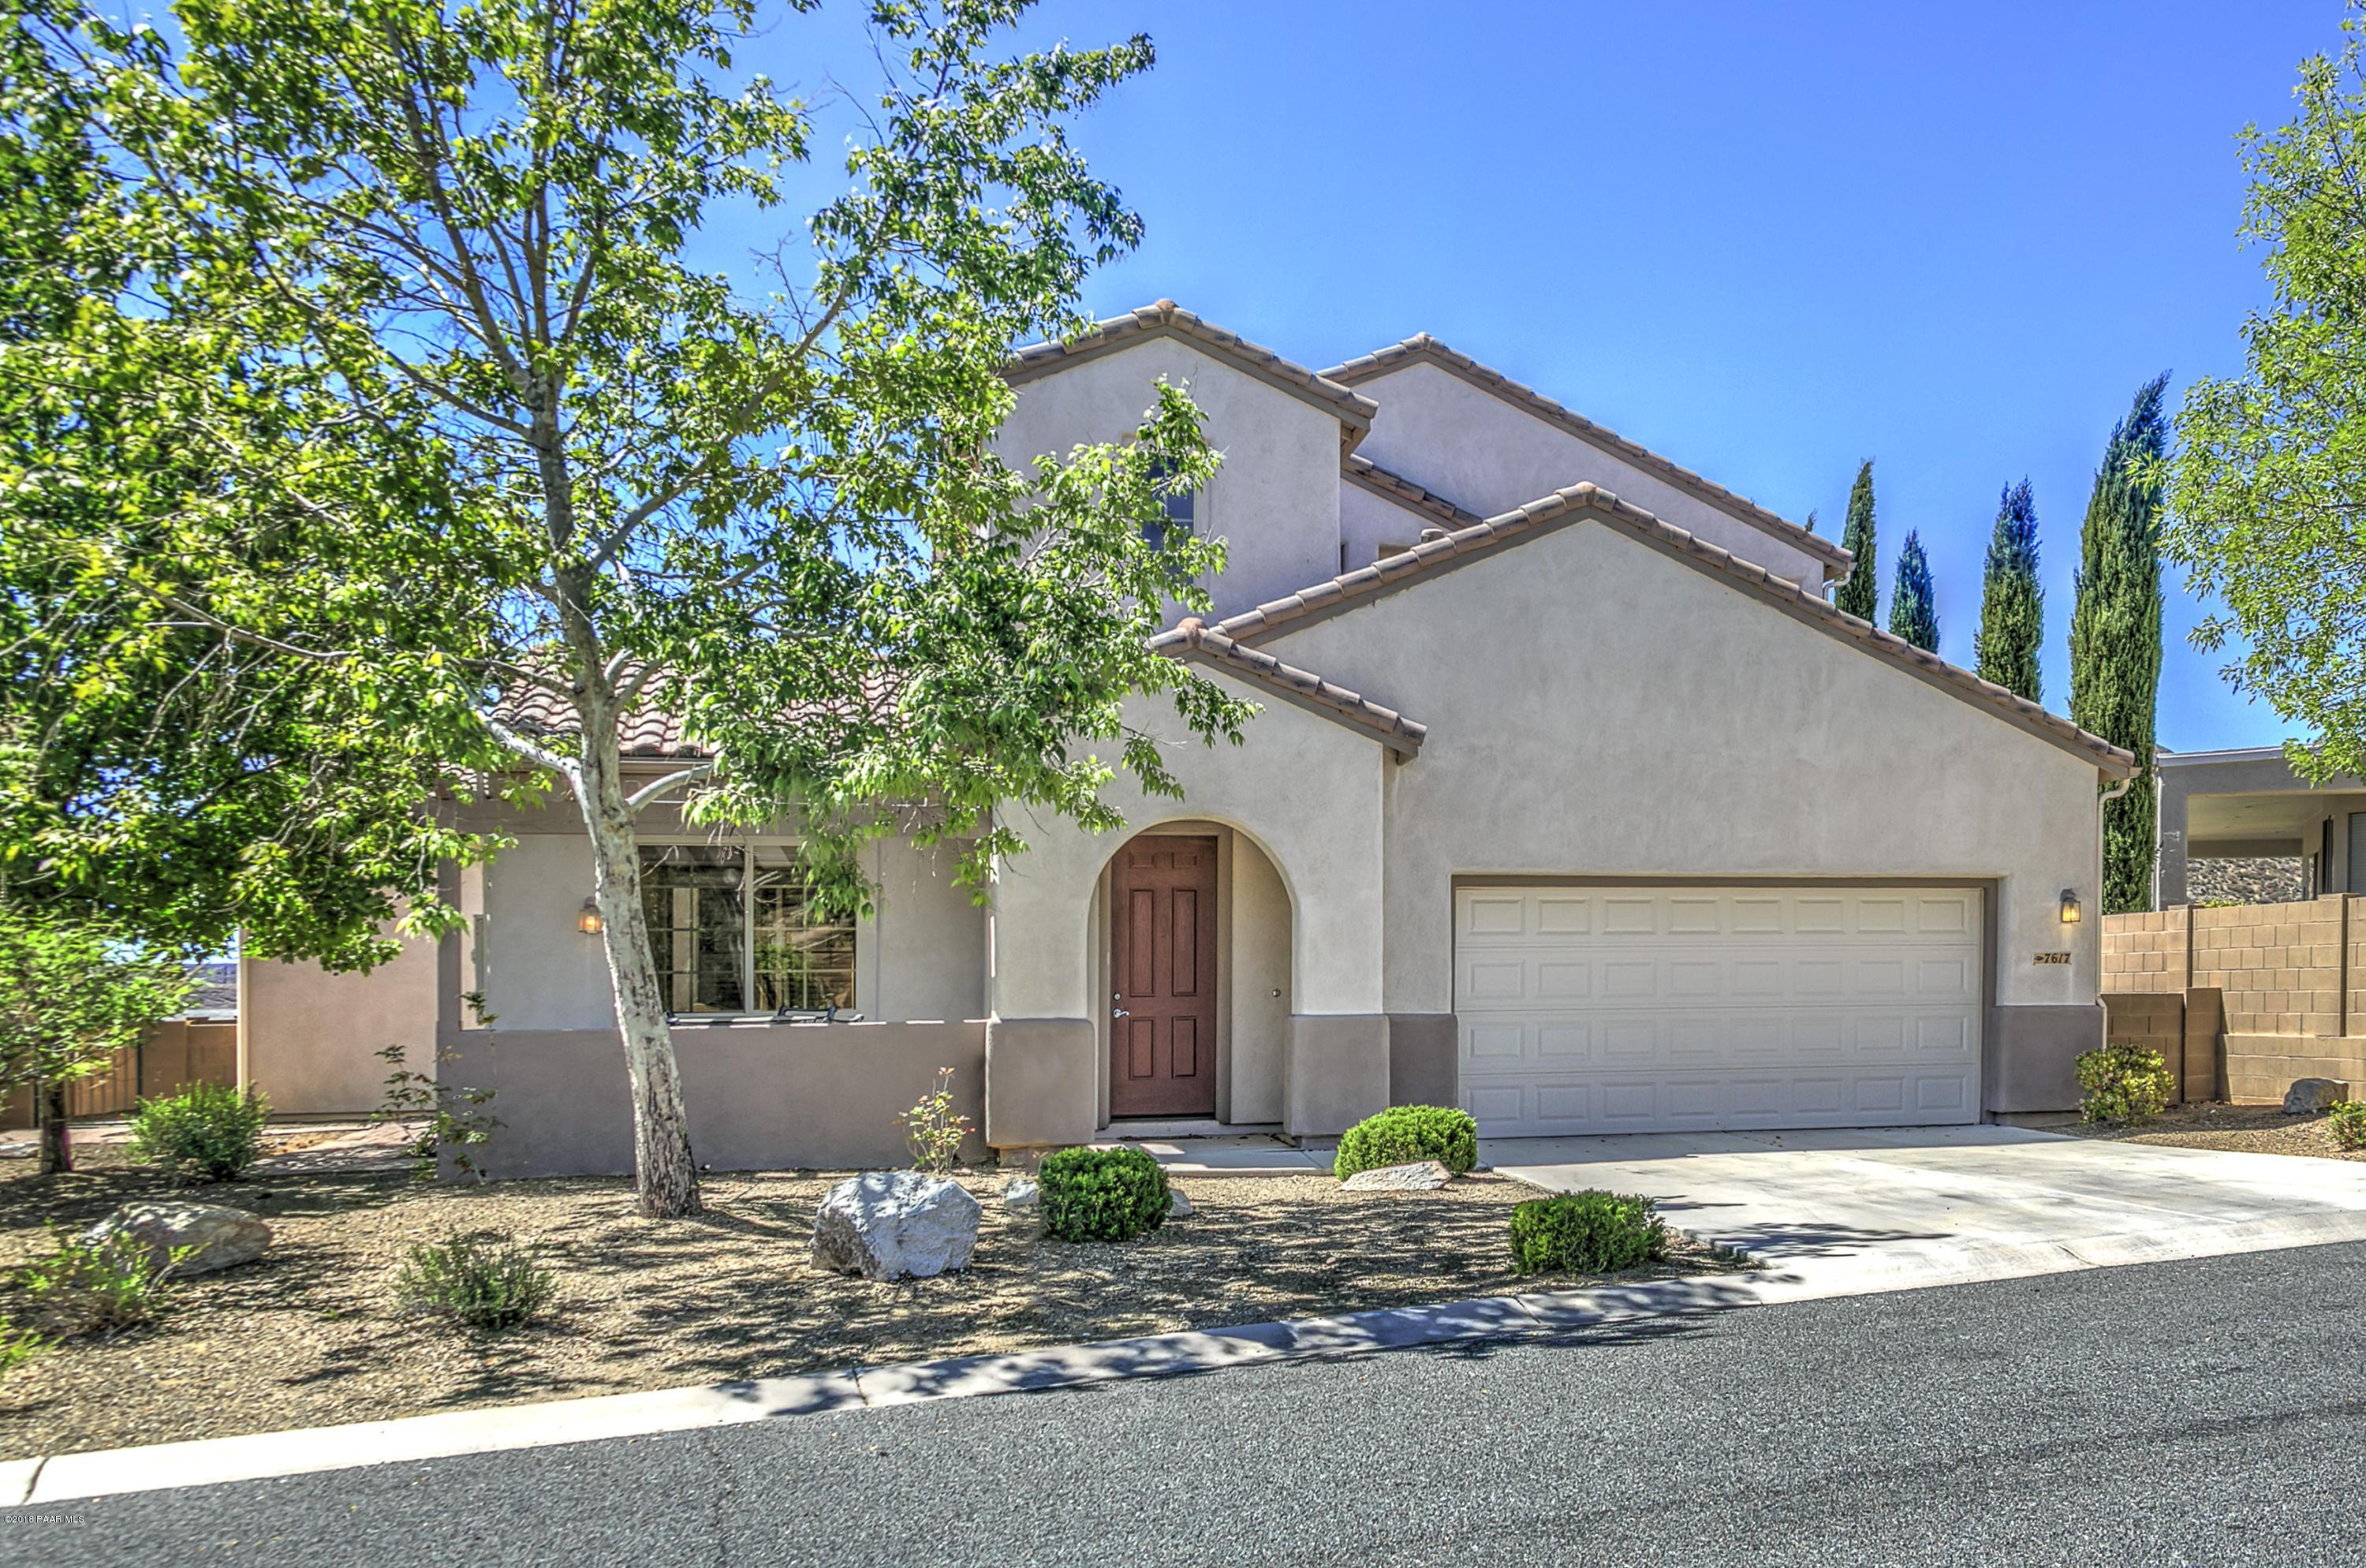 Photo of 7617 Bravo, Prescott Valley, AZ 86314